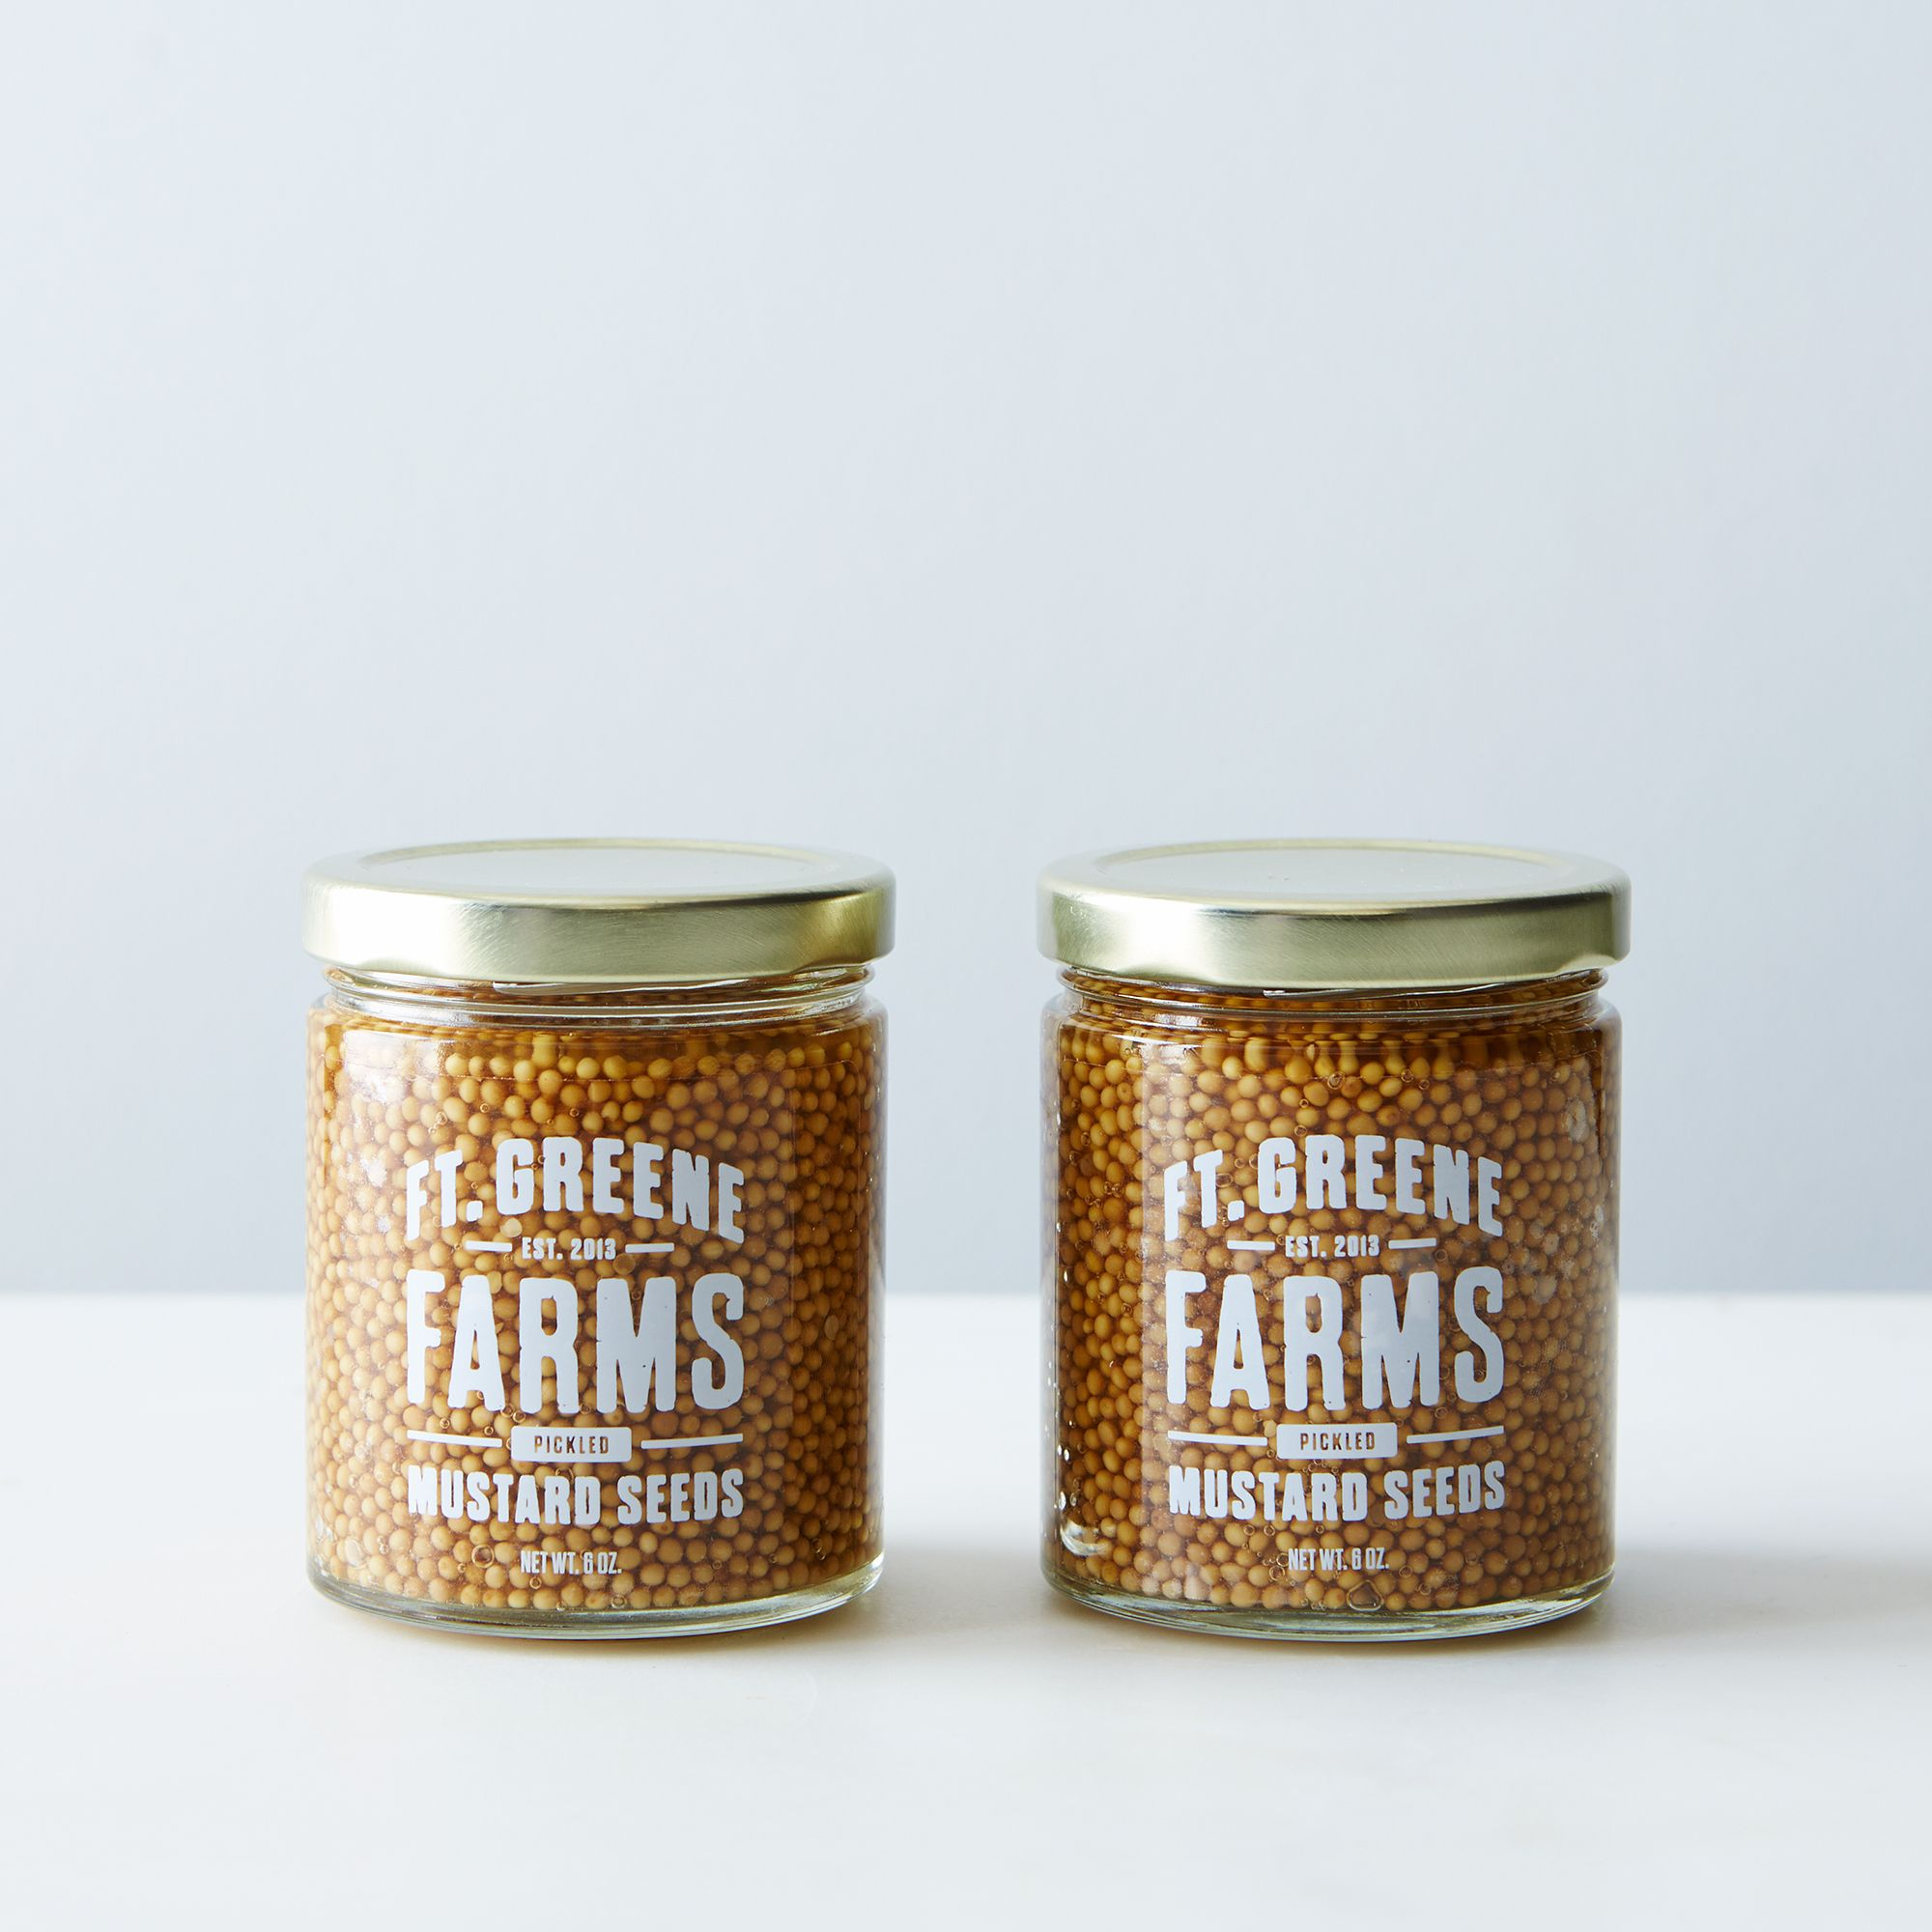 66aafcd4 80c2 4117 b737 0c44b78e0135  forte greene farms pickled mustard seeds provisions mark weinberg 10 09 14 0492 silo